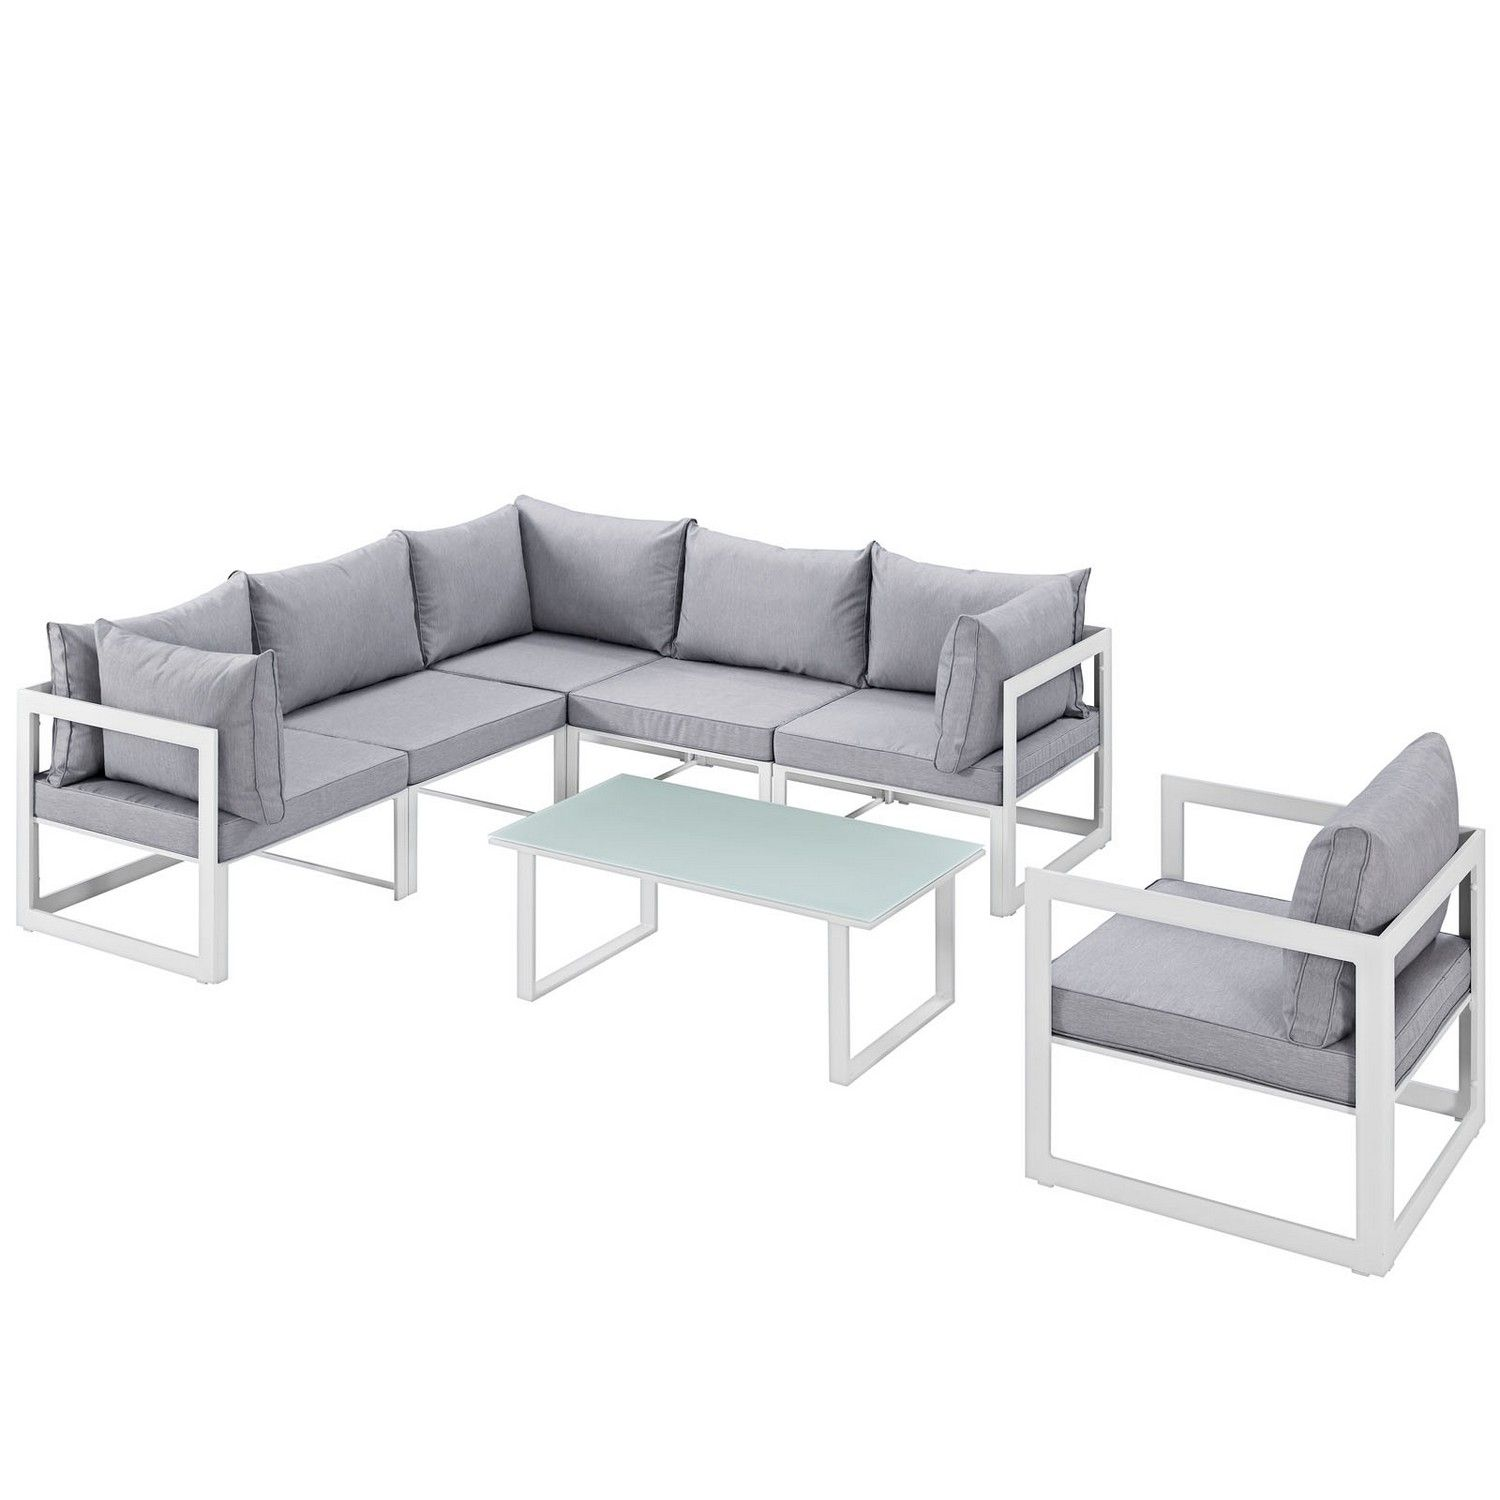 Modway Fortuna 7 Piece Outdoor Patio Sectional Sofa Set White